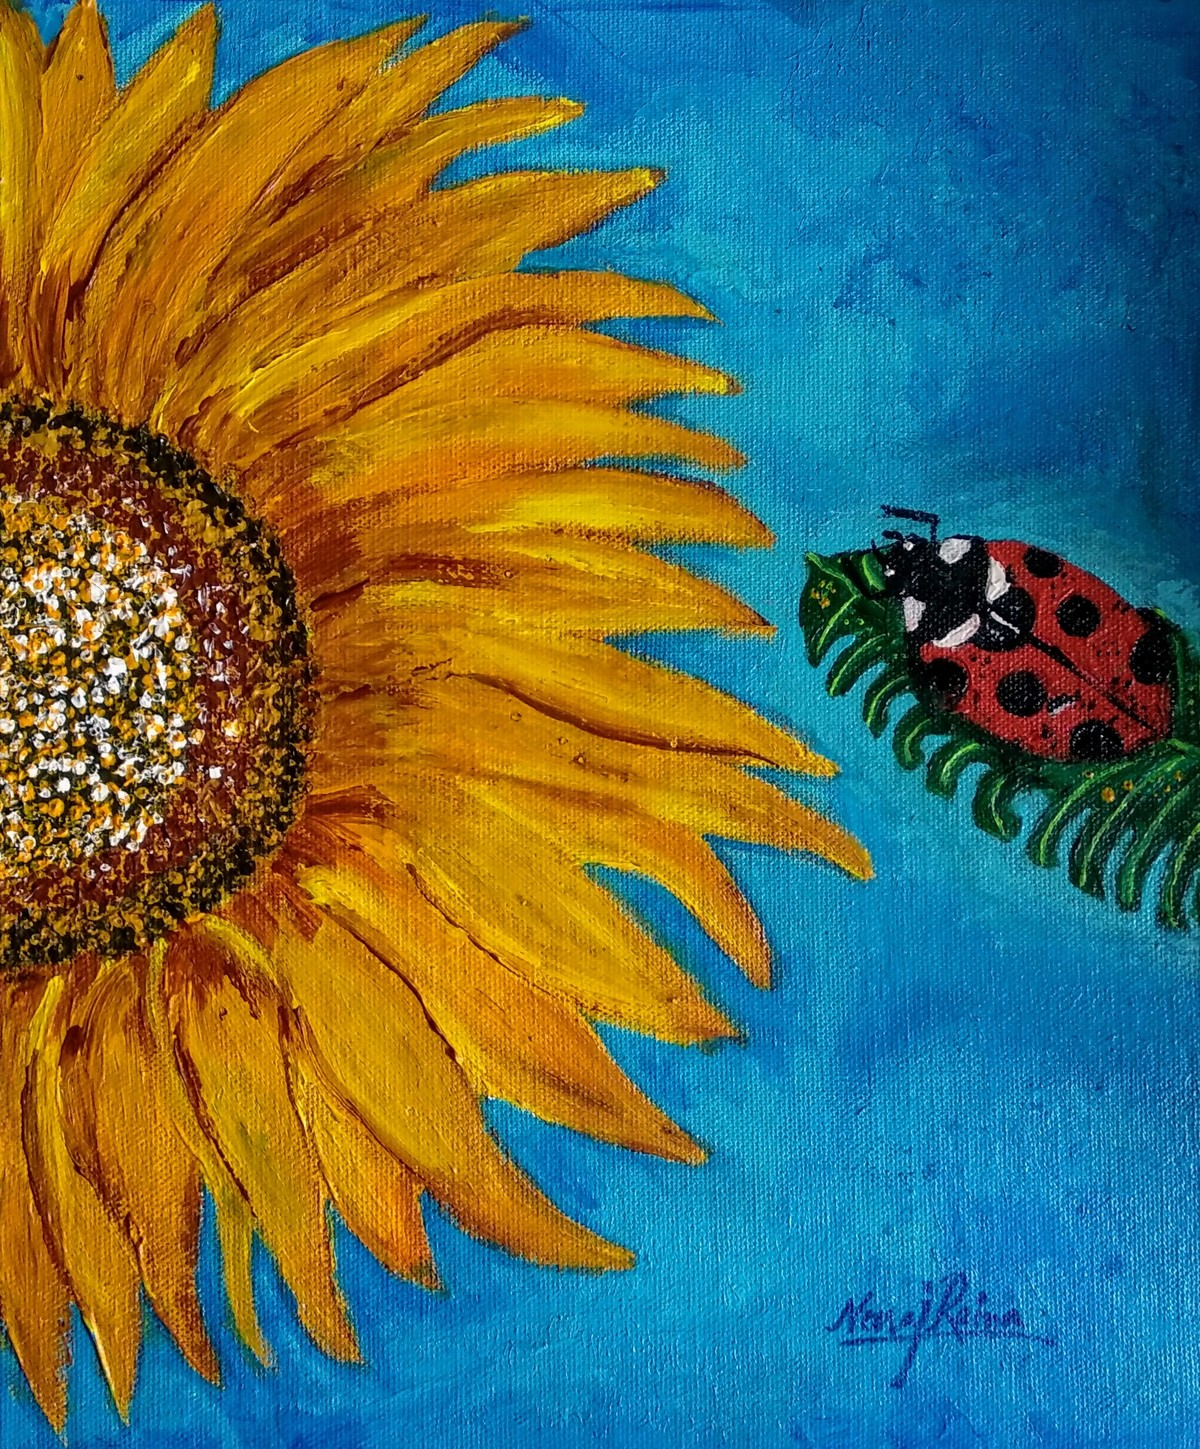 The Ladybird Beetle And Their Sunflower Story-by Neeraj Raina Digital Print by Neeraj Raina,Expressionism